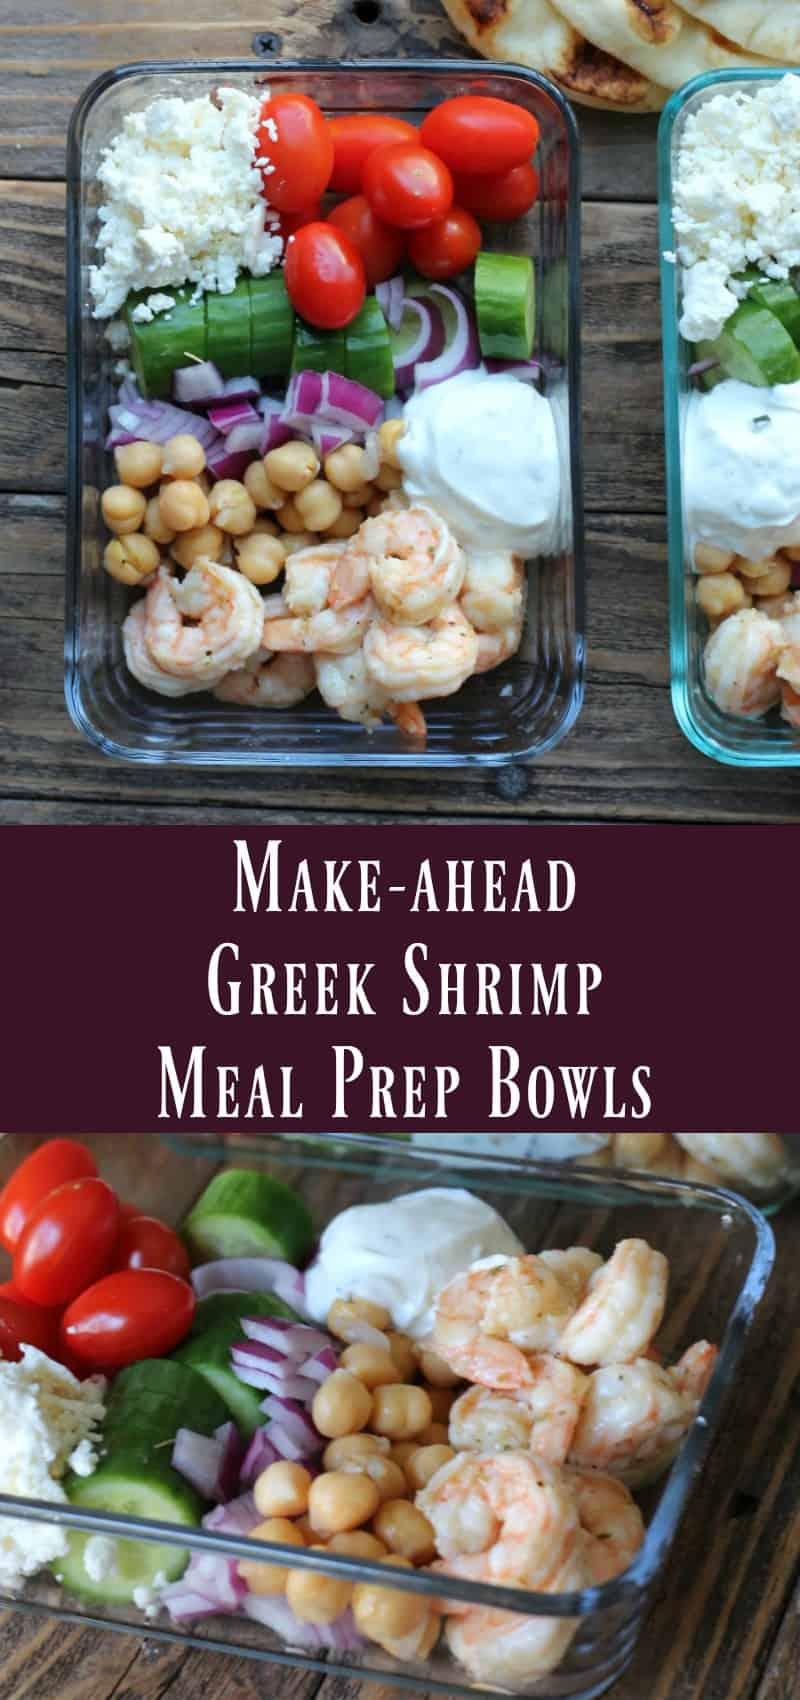 Make-ahead Greek Shrimp Meal Prep Bowls